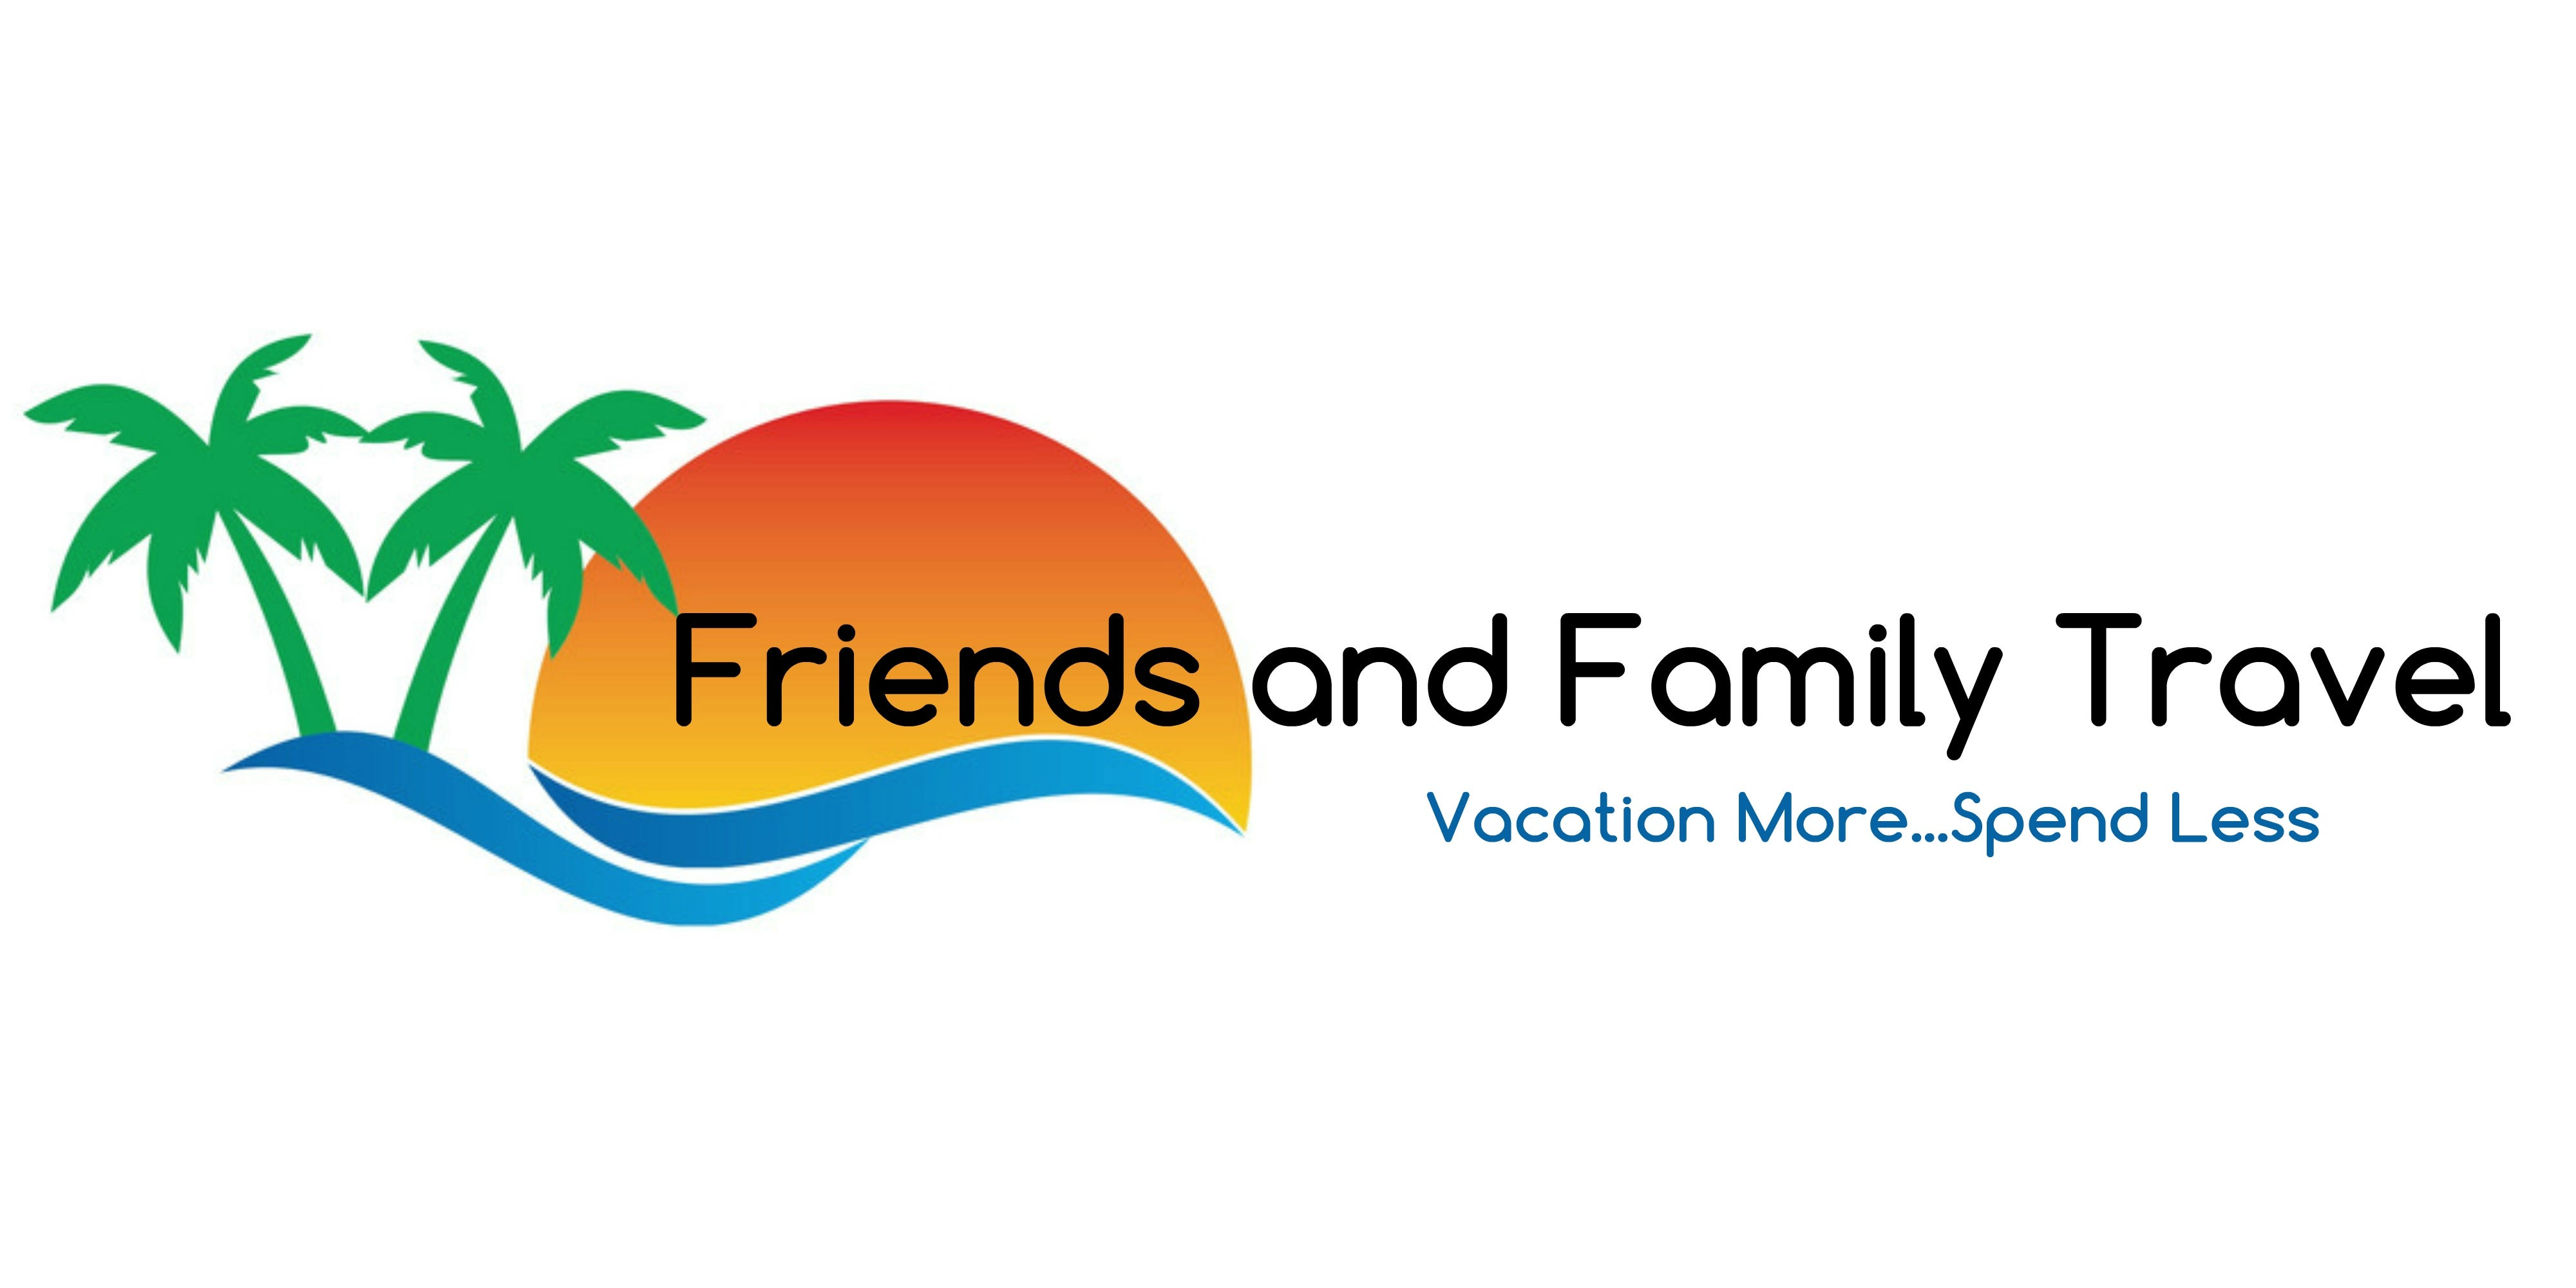 Friends and Family Travel